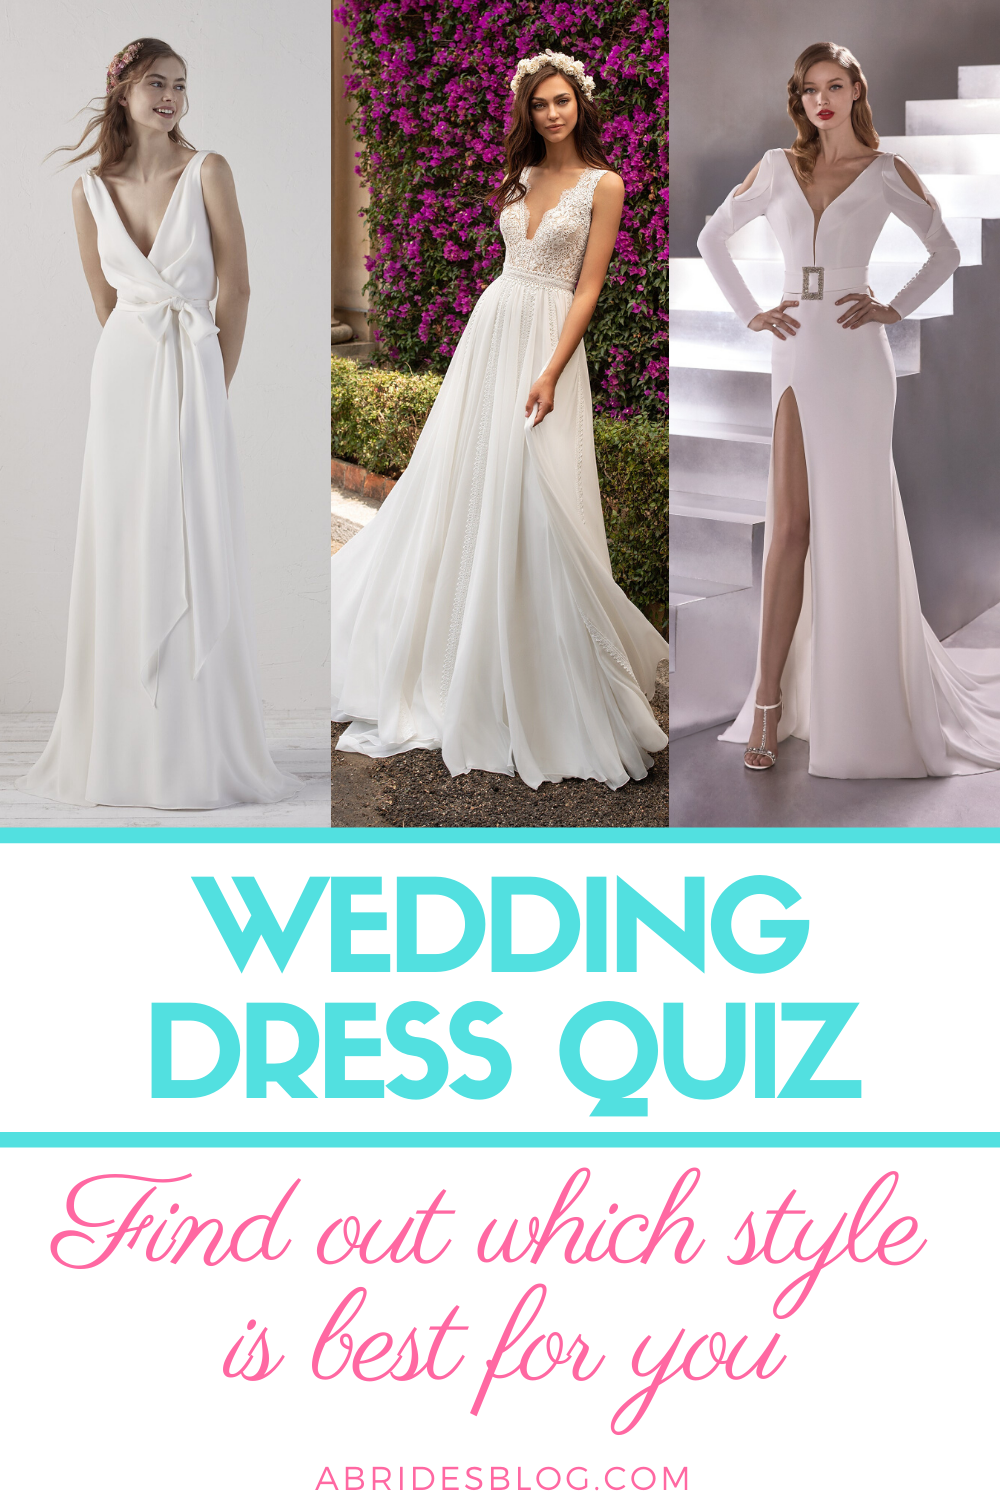 Wedding Dress Quiz What Dress Style Should You Wear On Your Wedding Day In 2020 Wedding Dress Quiz Wedding Dress Types Online Wedding Dress